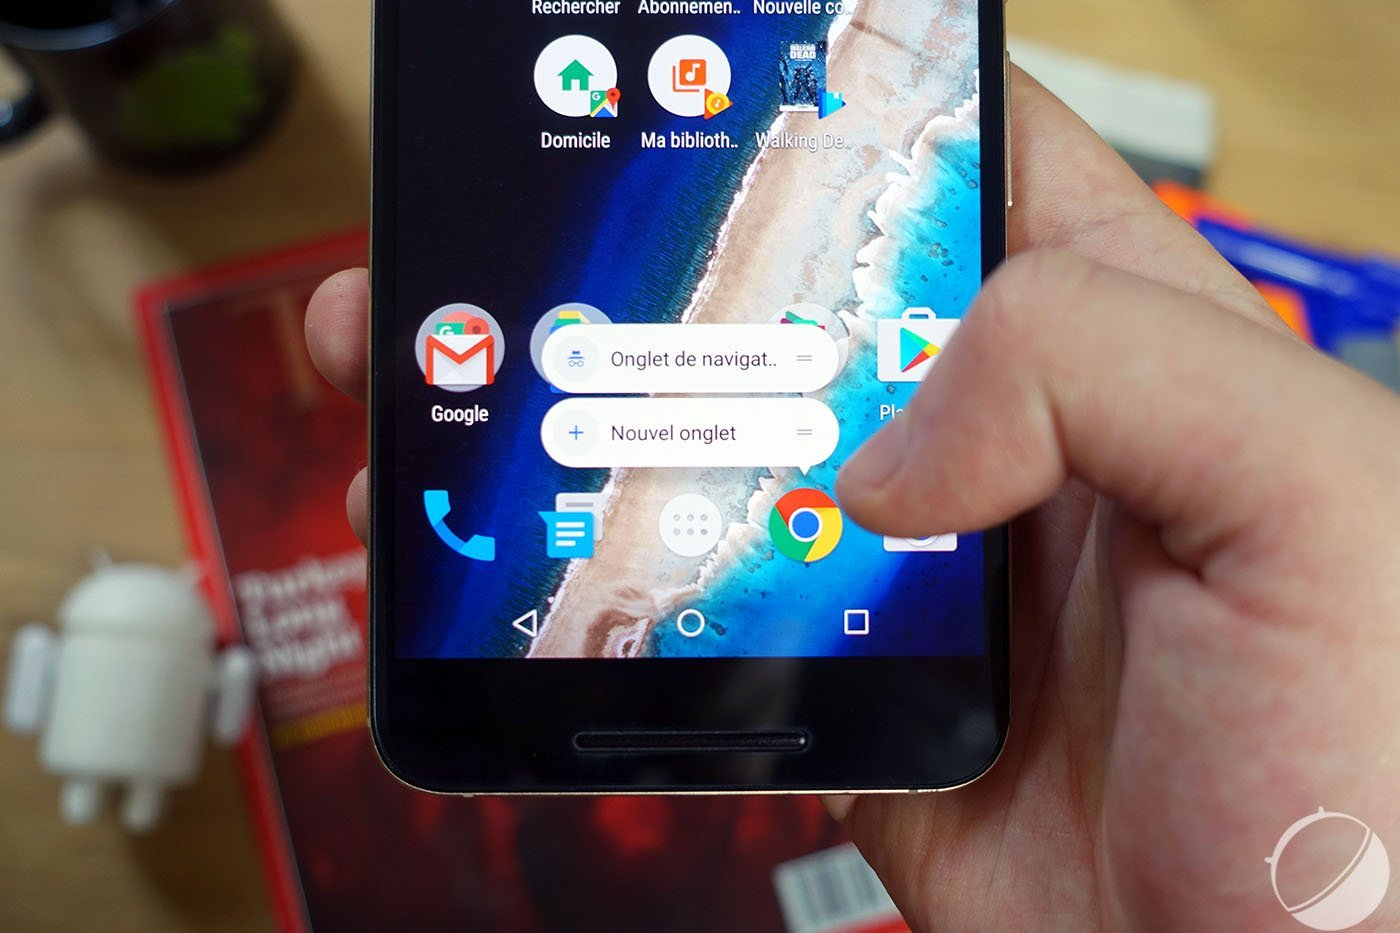 Nova Launcher Prime : le lanceur d'applications le plus complet est en promotion